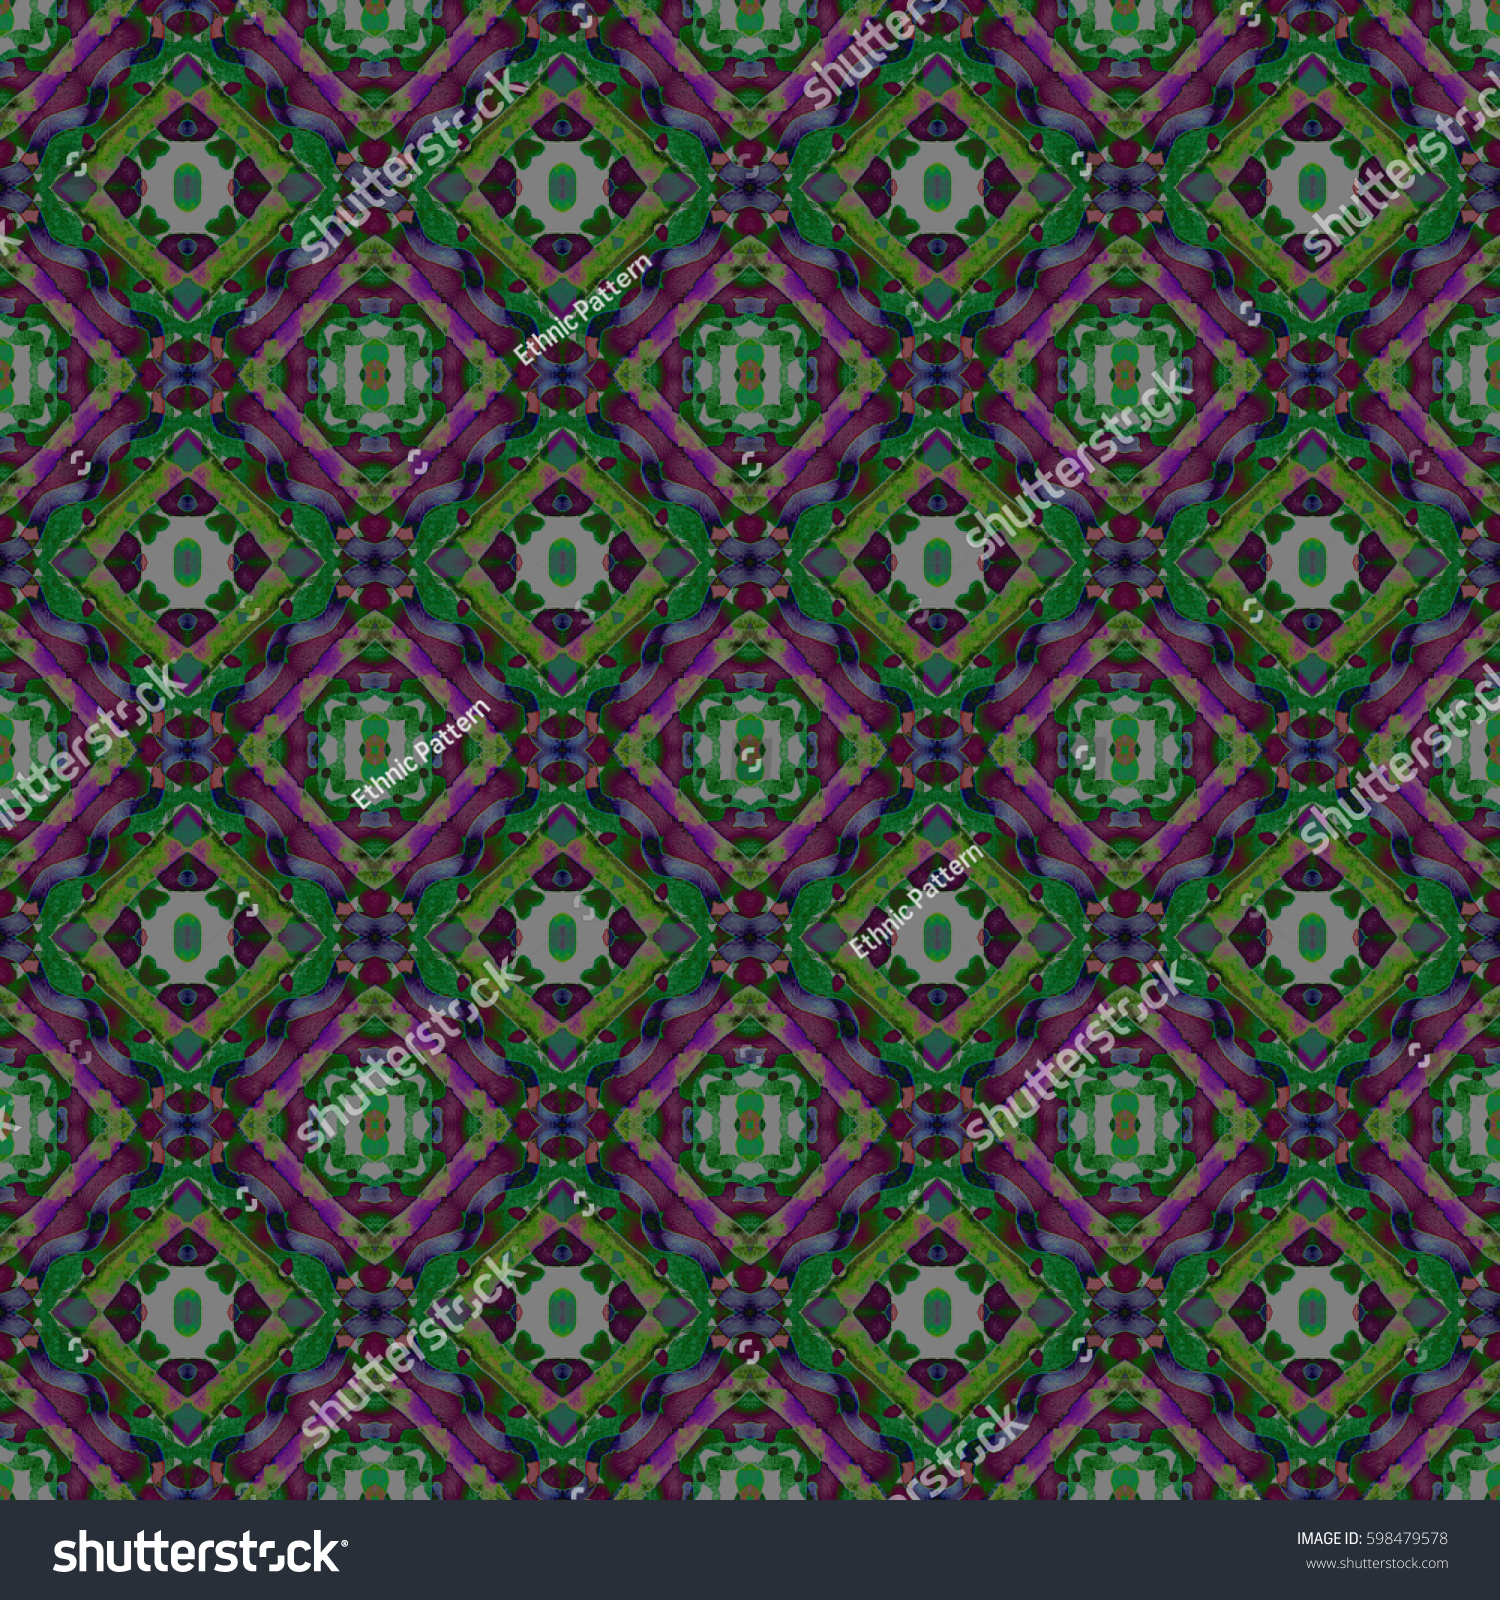 Abstract Geometric Seamless Pattern Handmade Ethnic And Tribal Motifs Bohemian